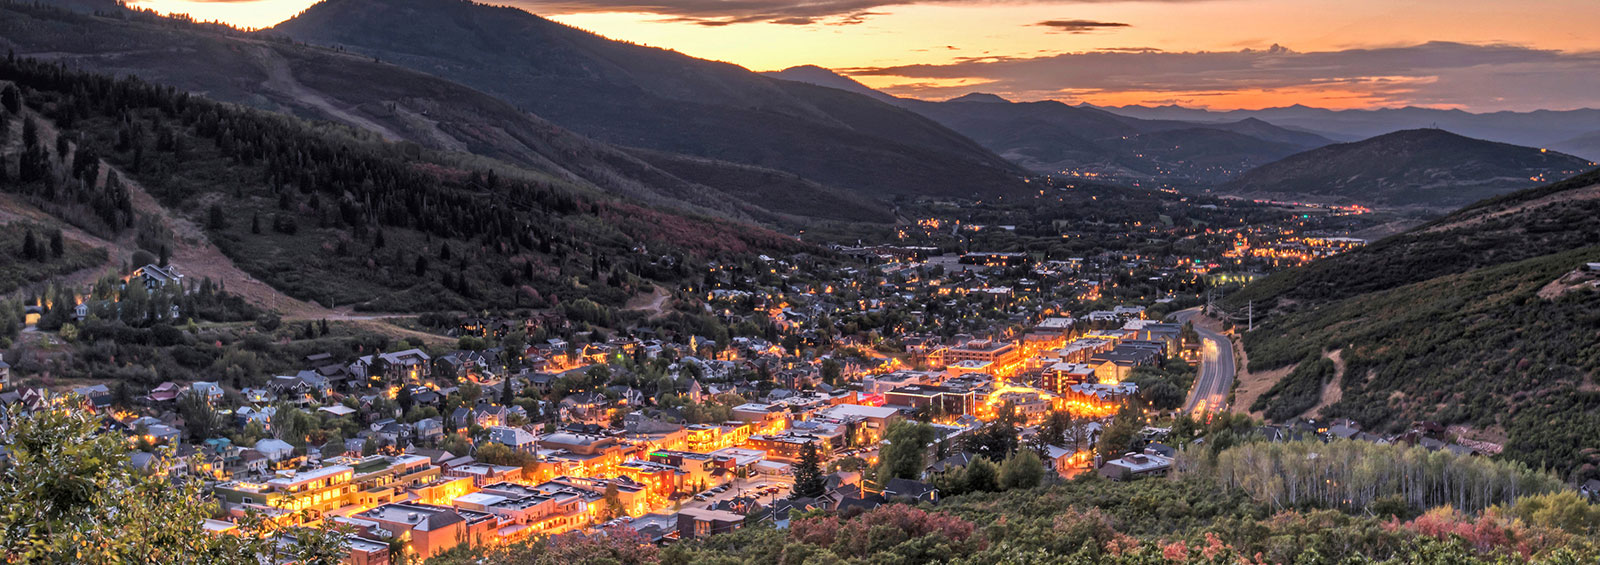 Park City Utah Sunset